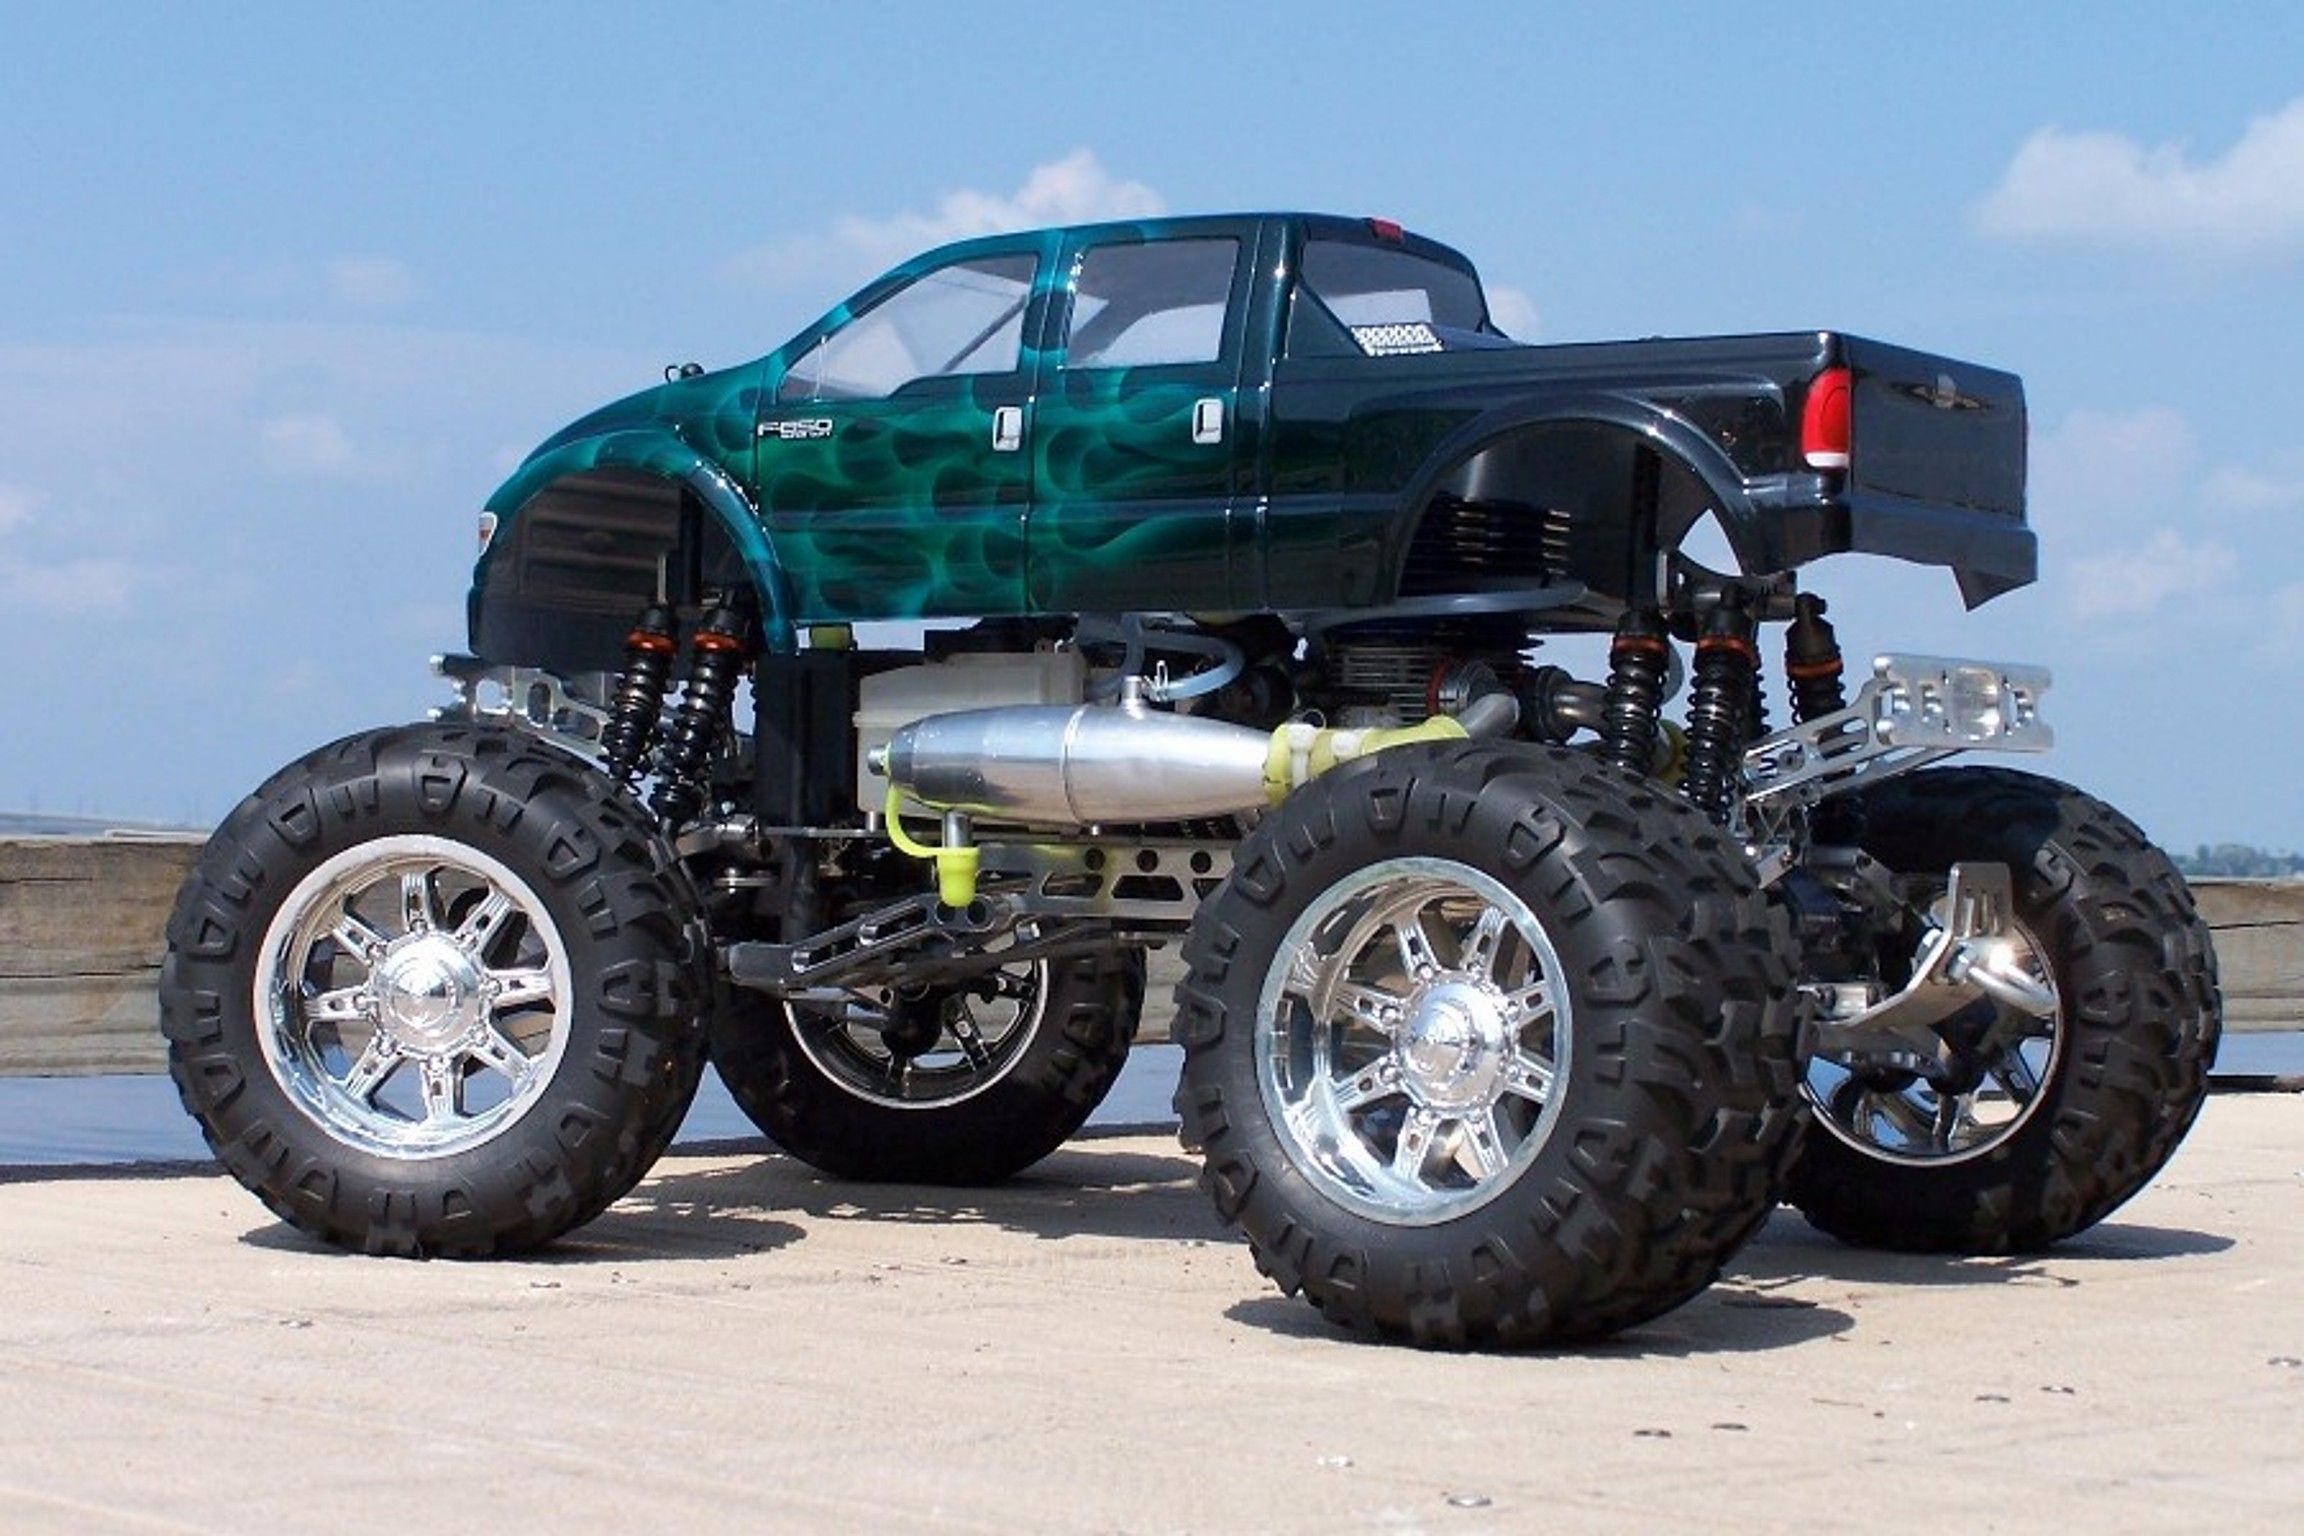 big truck Monster trucks, Rc cars and trucks, Rc monster